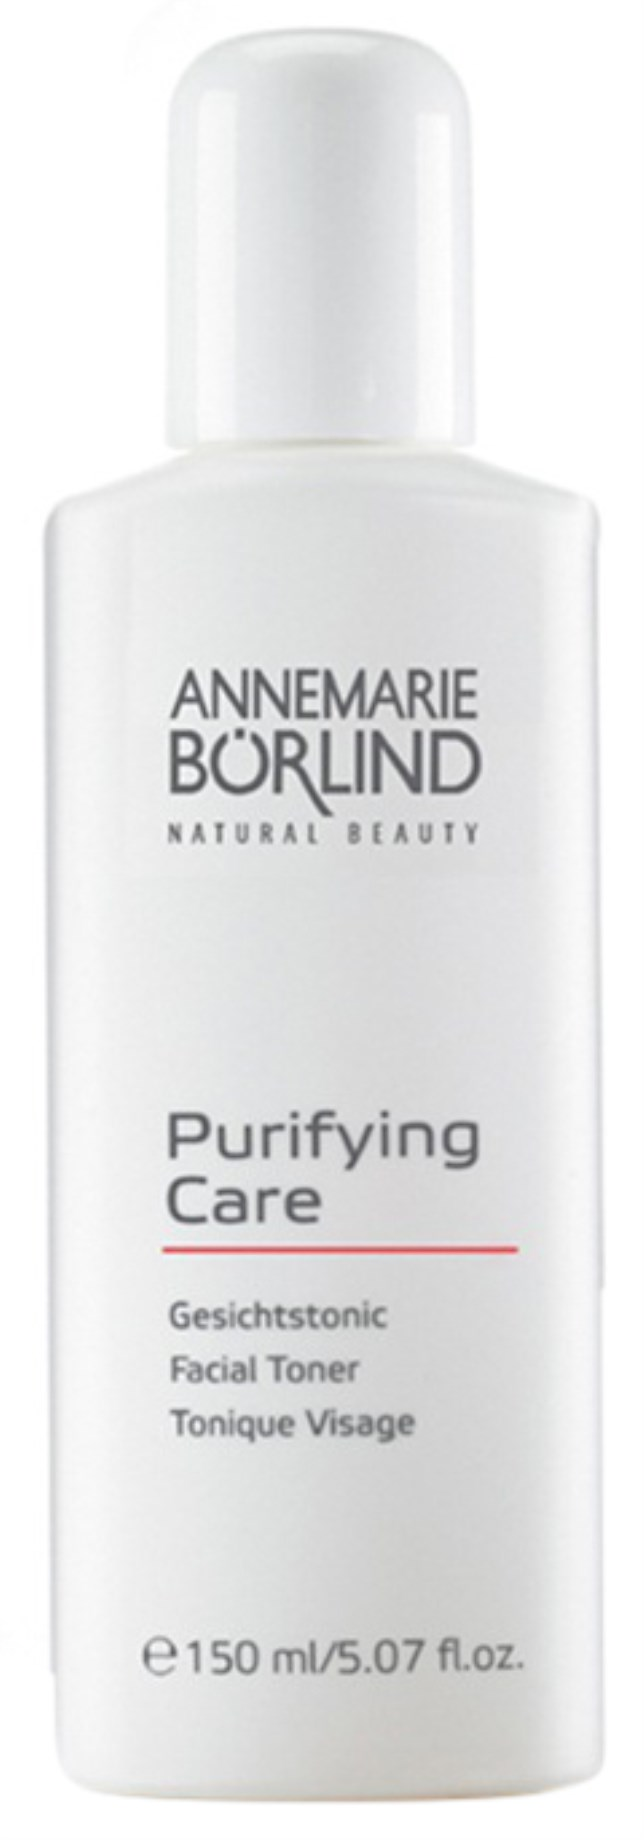 A.Börlind Purifying Care Facial Toner,  - Anne-Marie Börlind